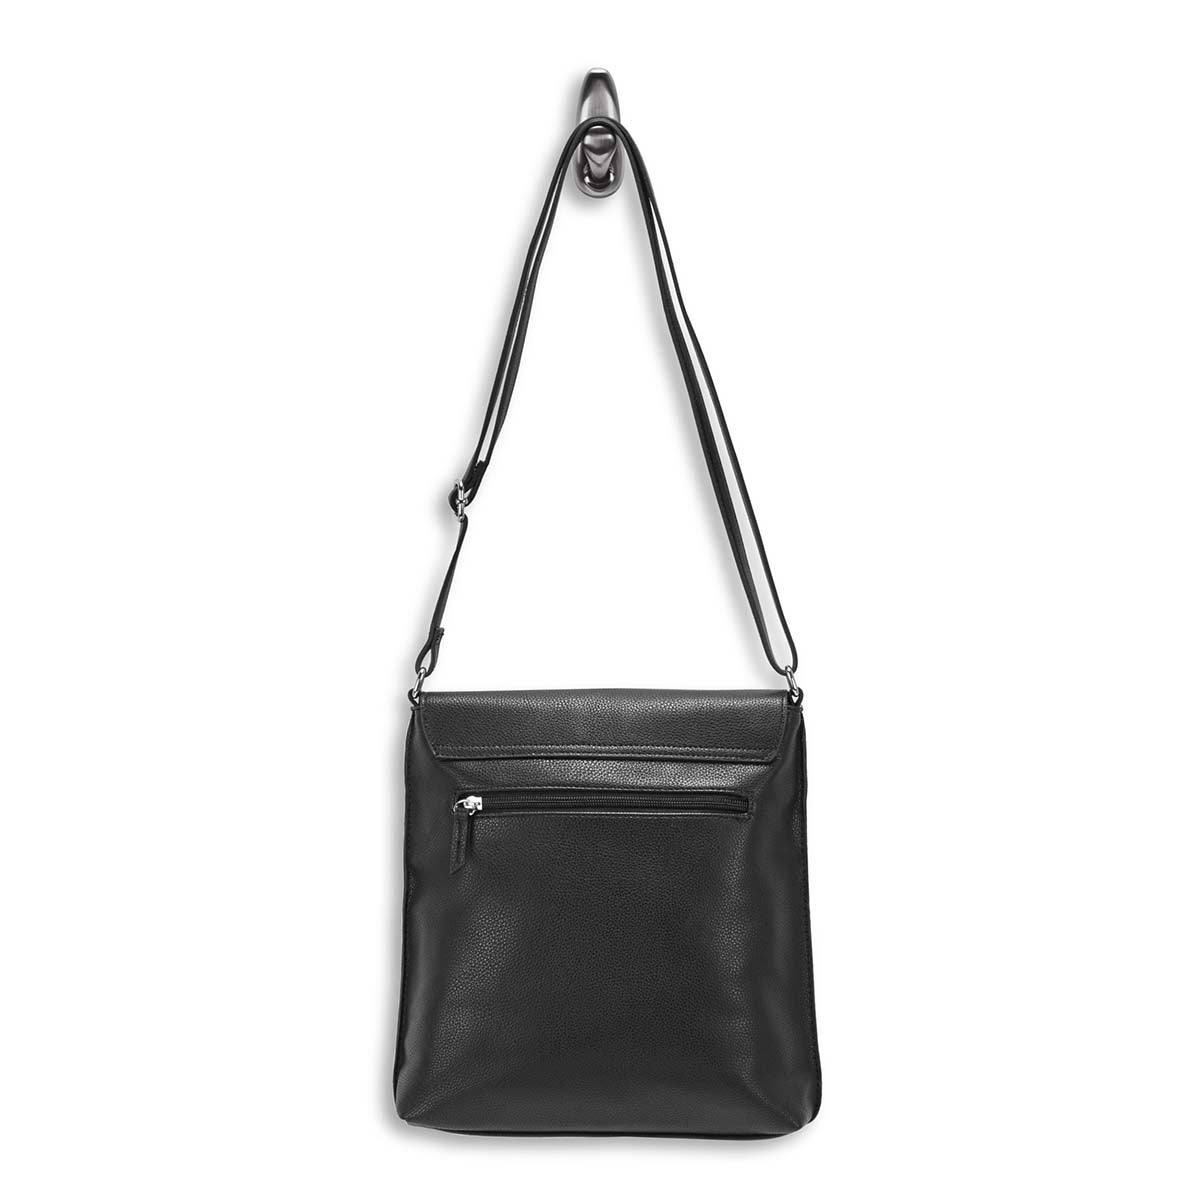 Lds Roots73 blk double flap cross body